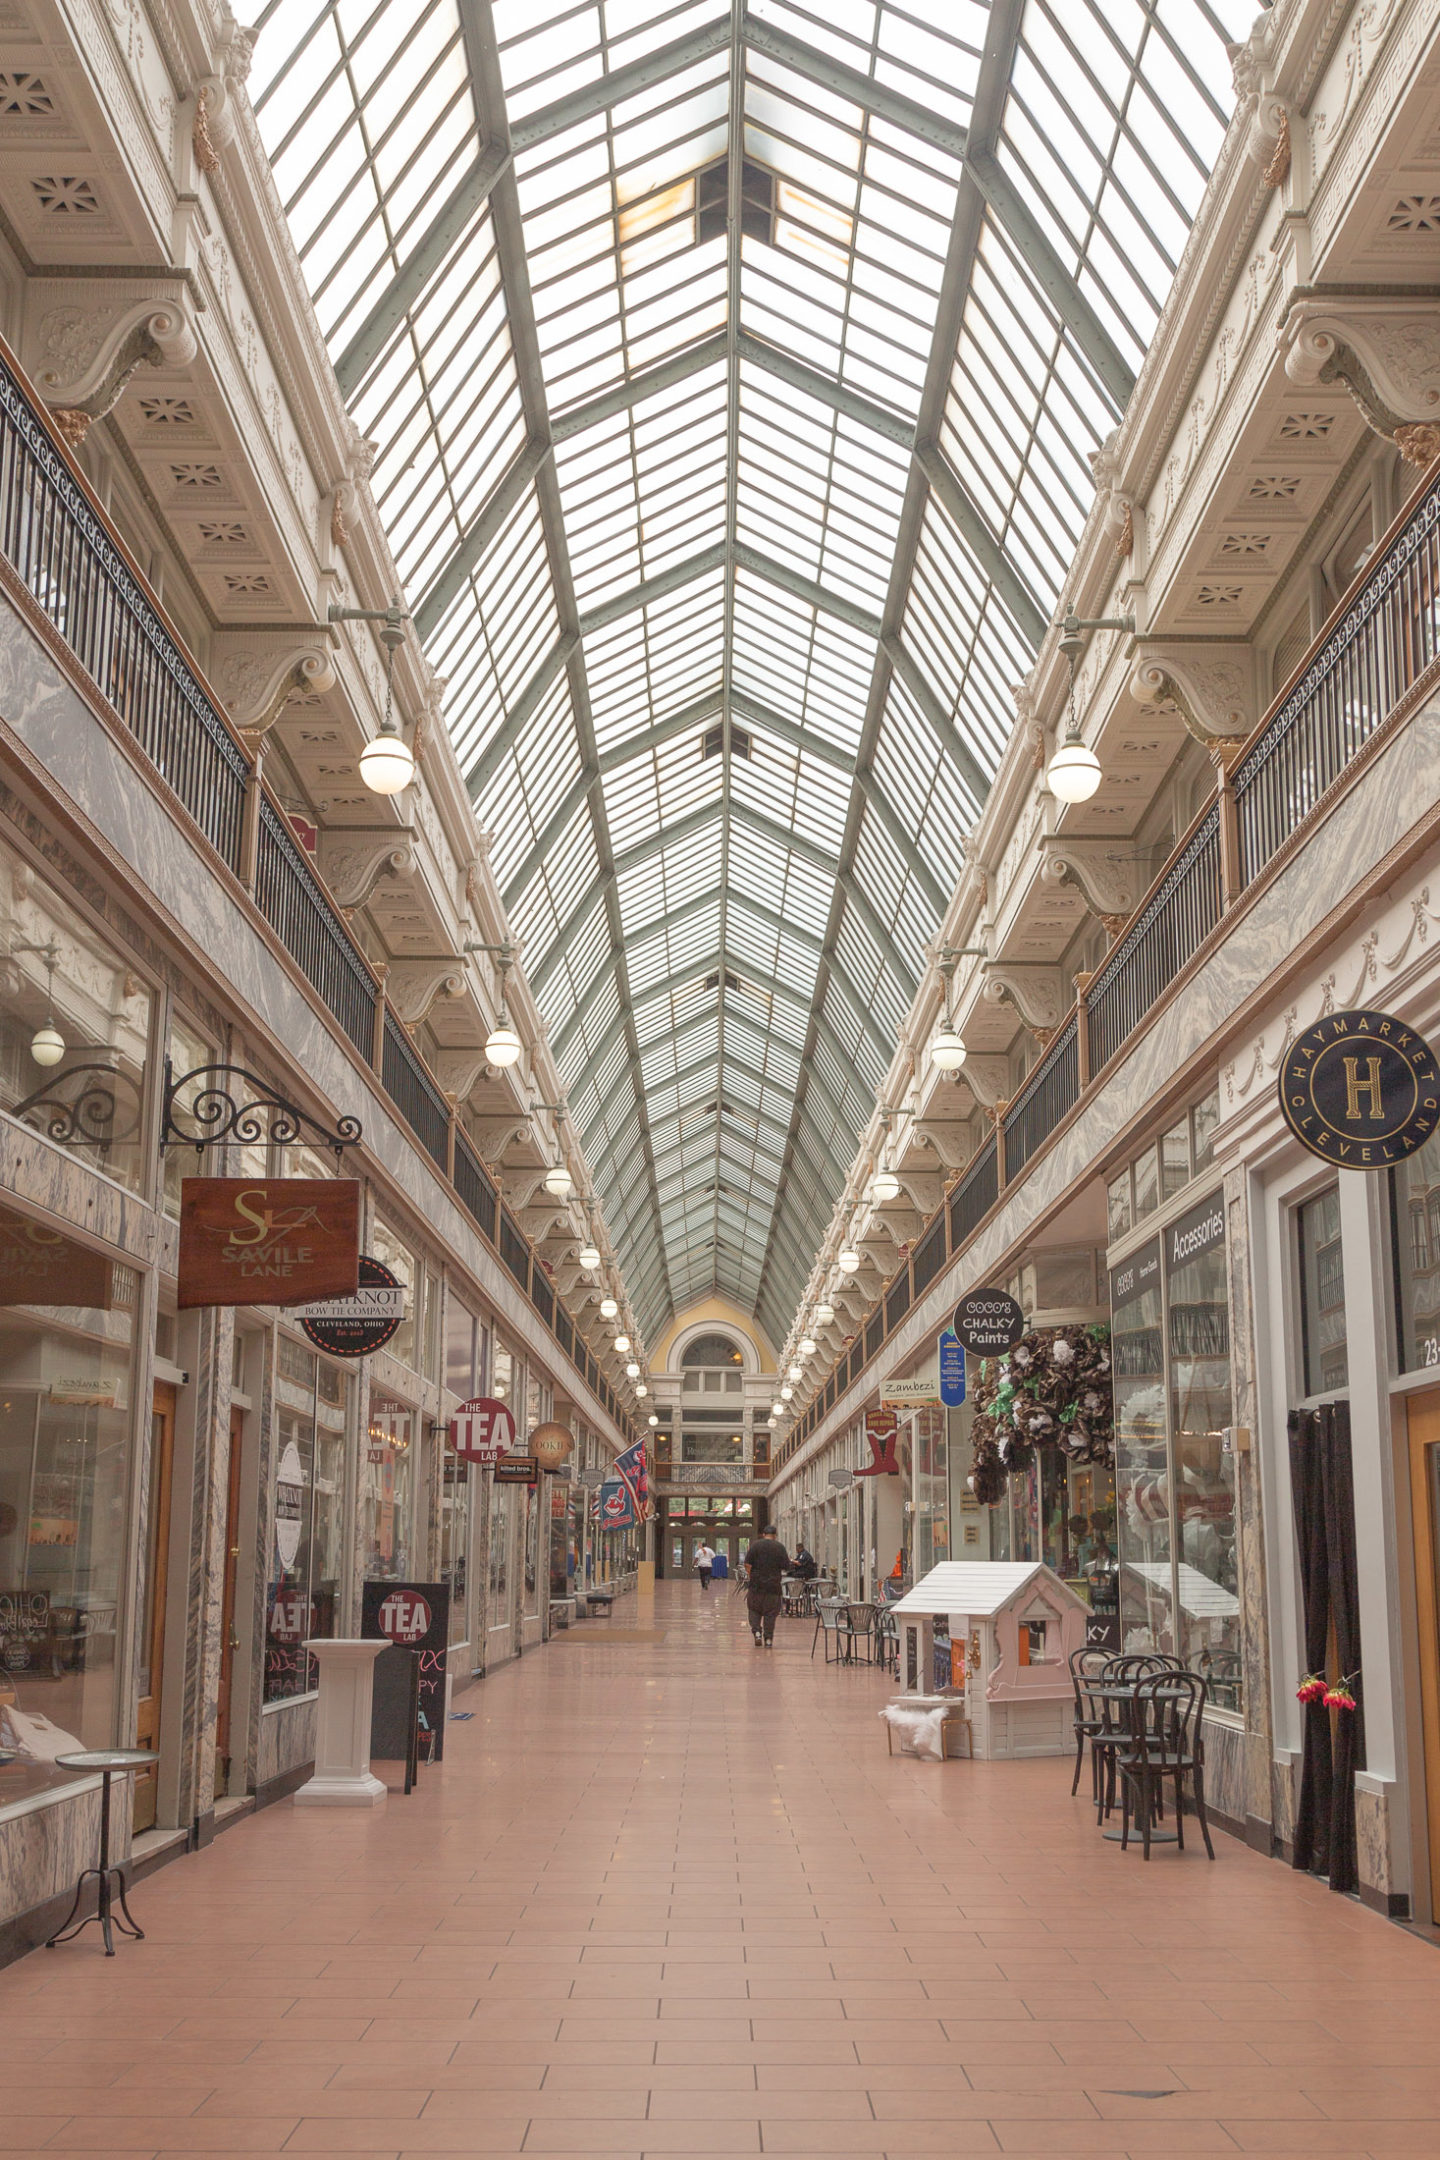 Euclid Avenue Shopping Arcade | Fun Things to Do in Cleveland, Ohio